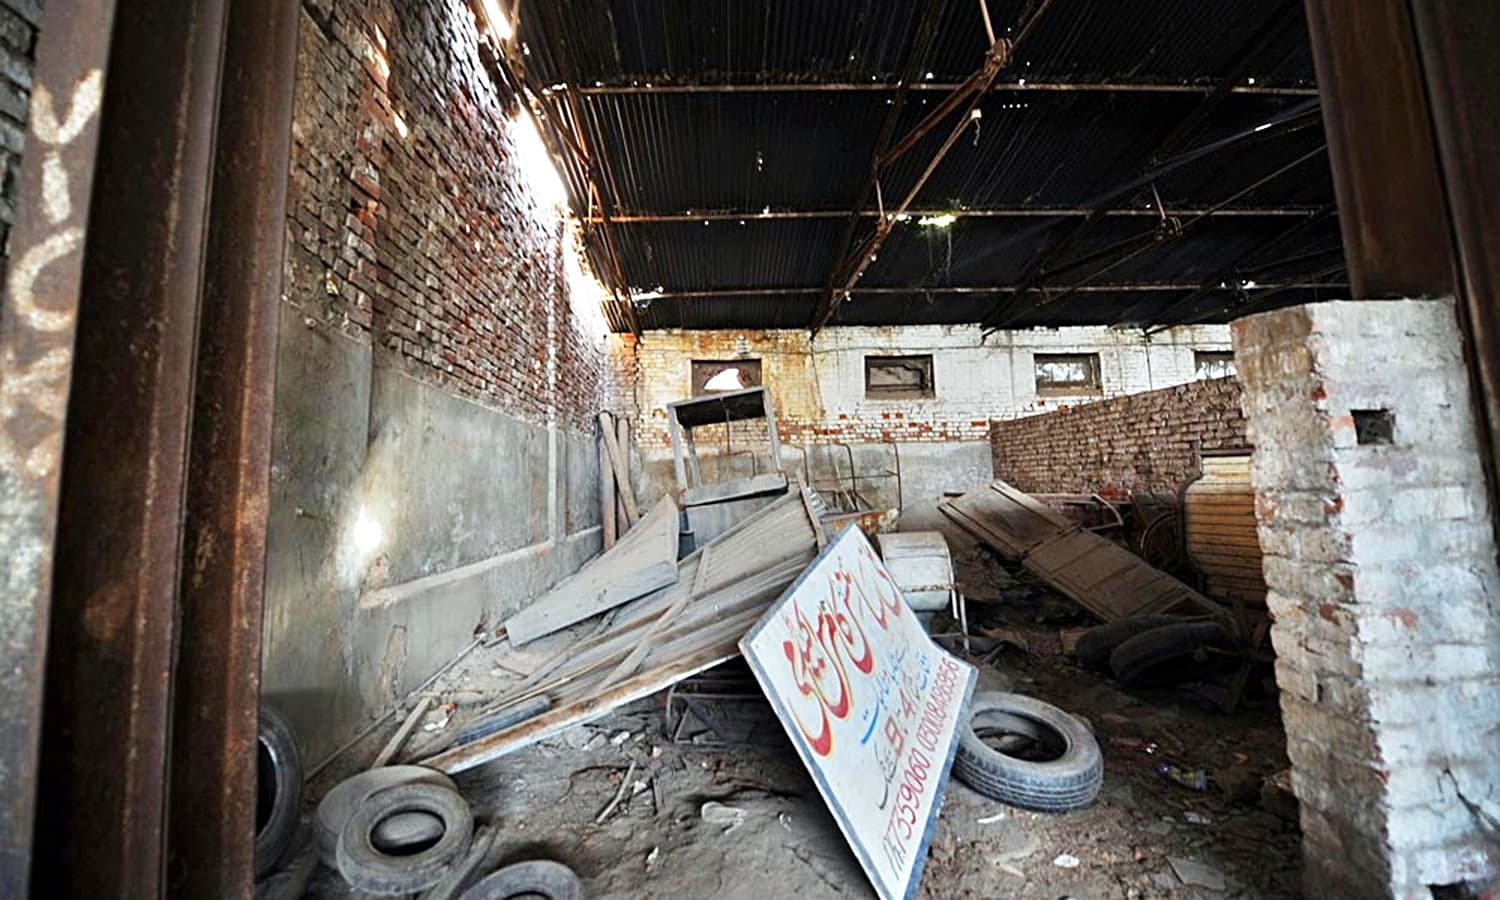 The terrible conditions and signs of deliberate damage all around the hall.